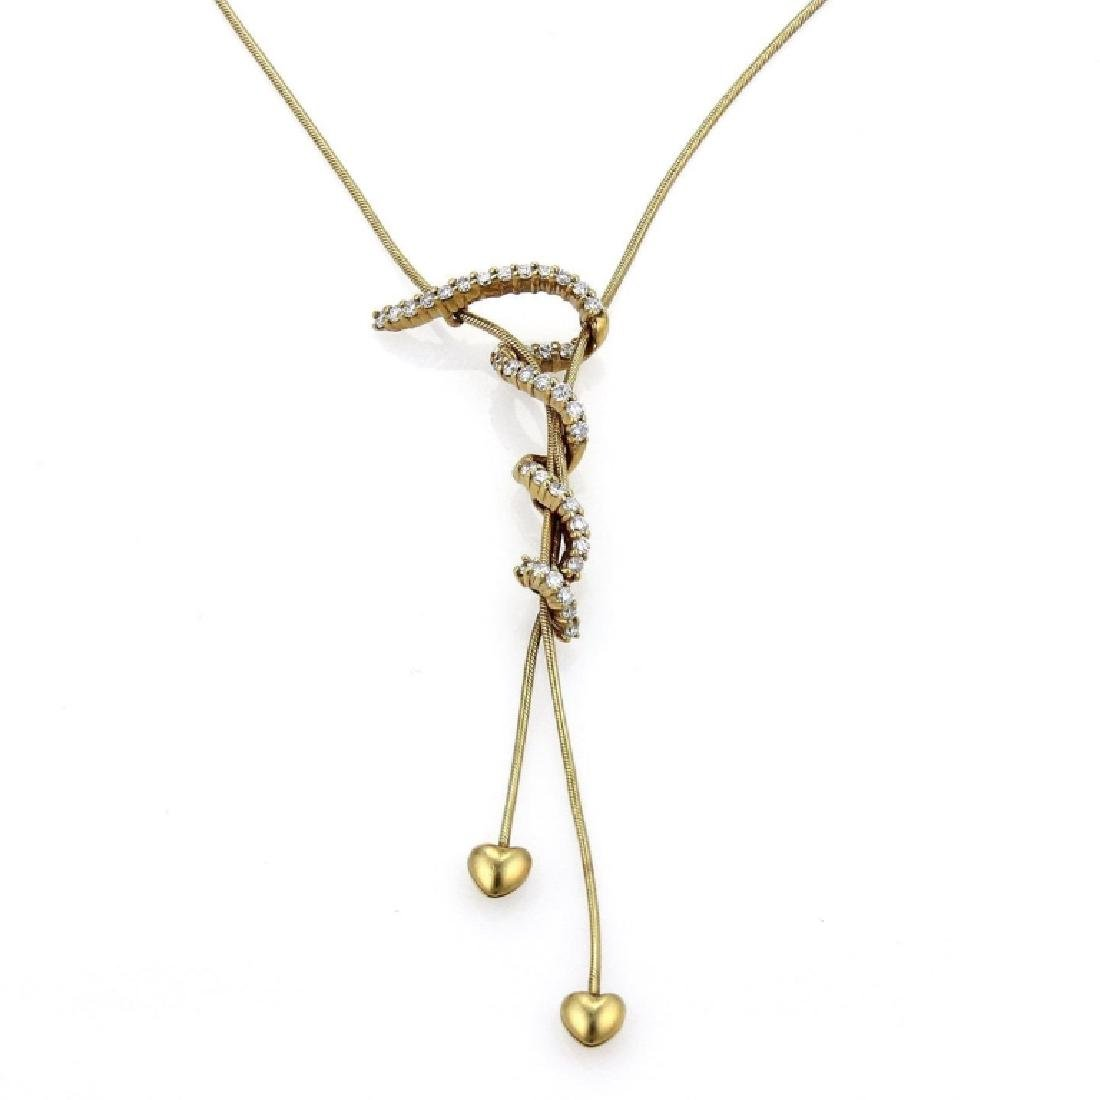 Jose Hess Diamond 18k Gold Pendant Necklace